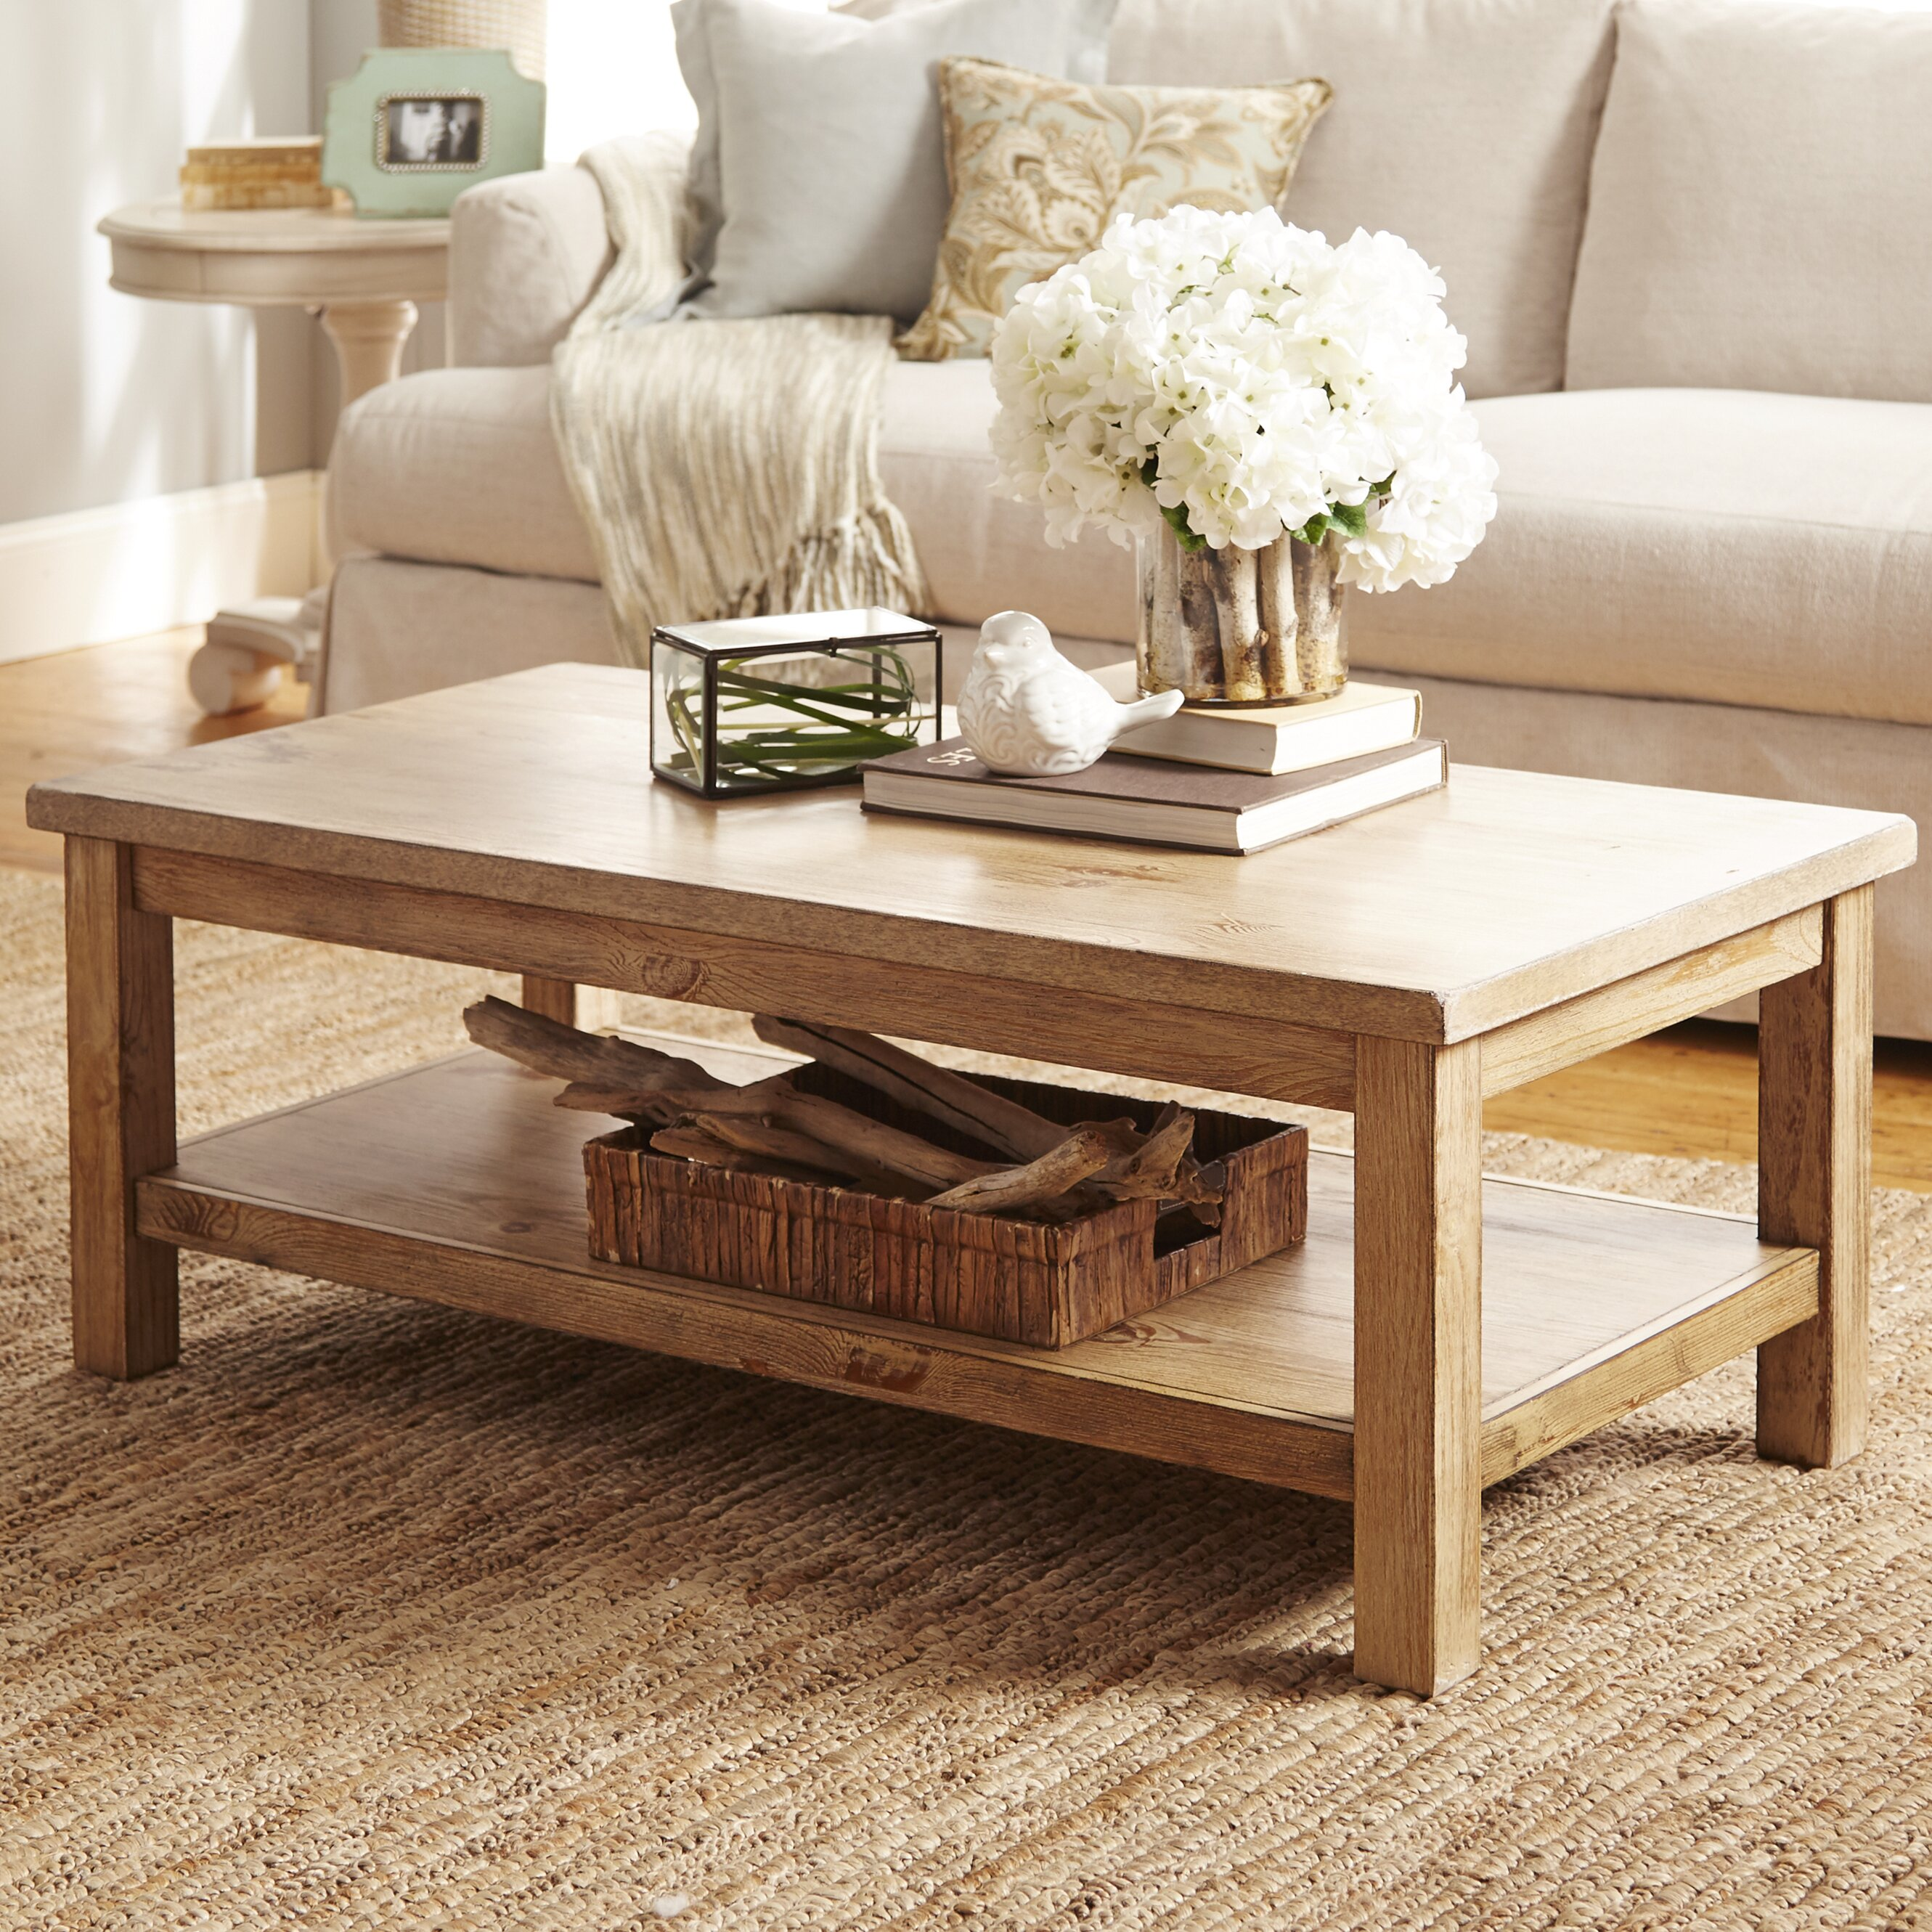 Wayfair Table: August Grove Flores Coffee Table & Reviews